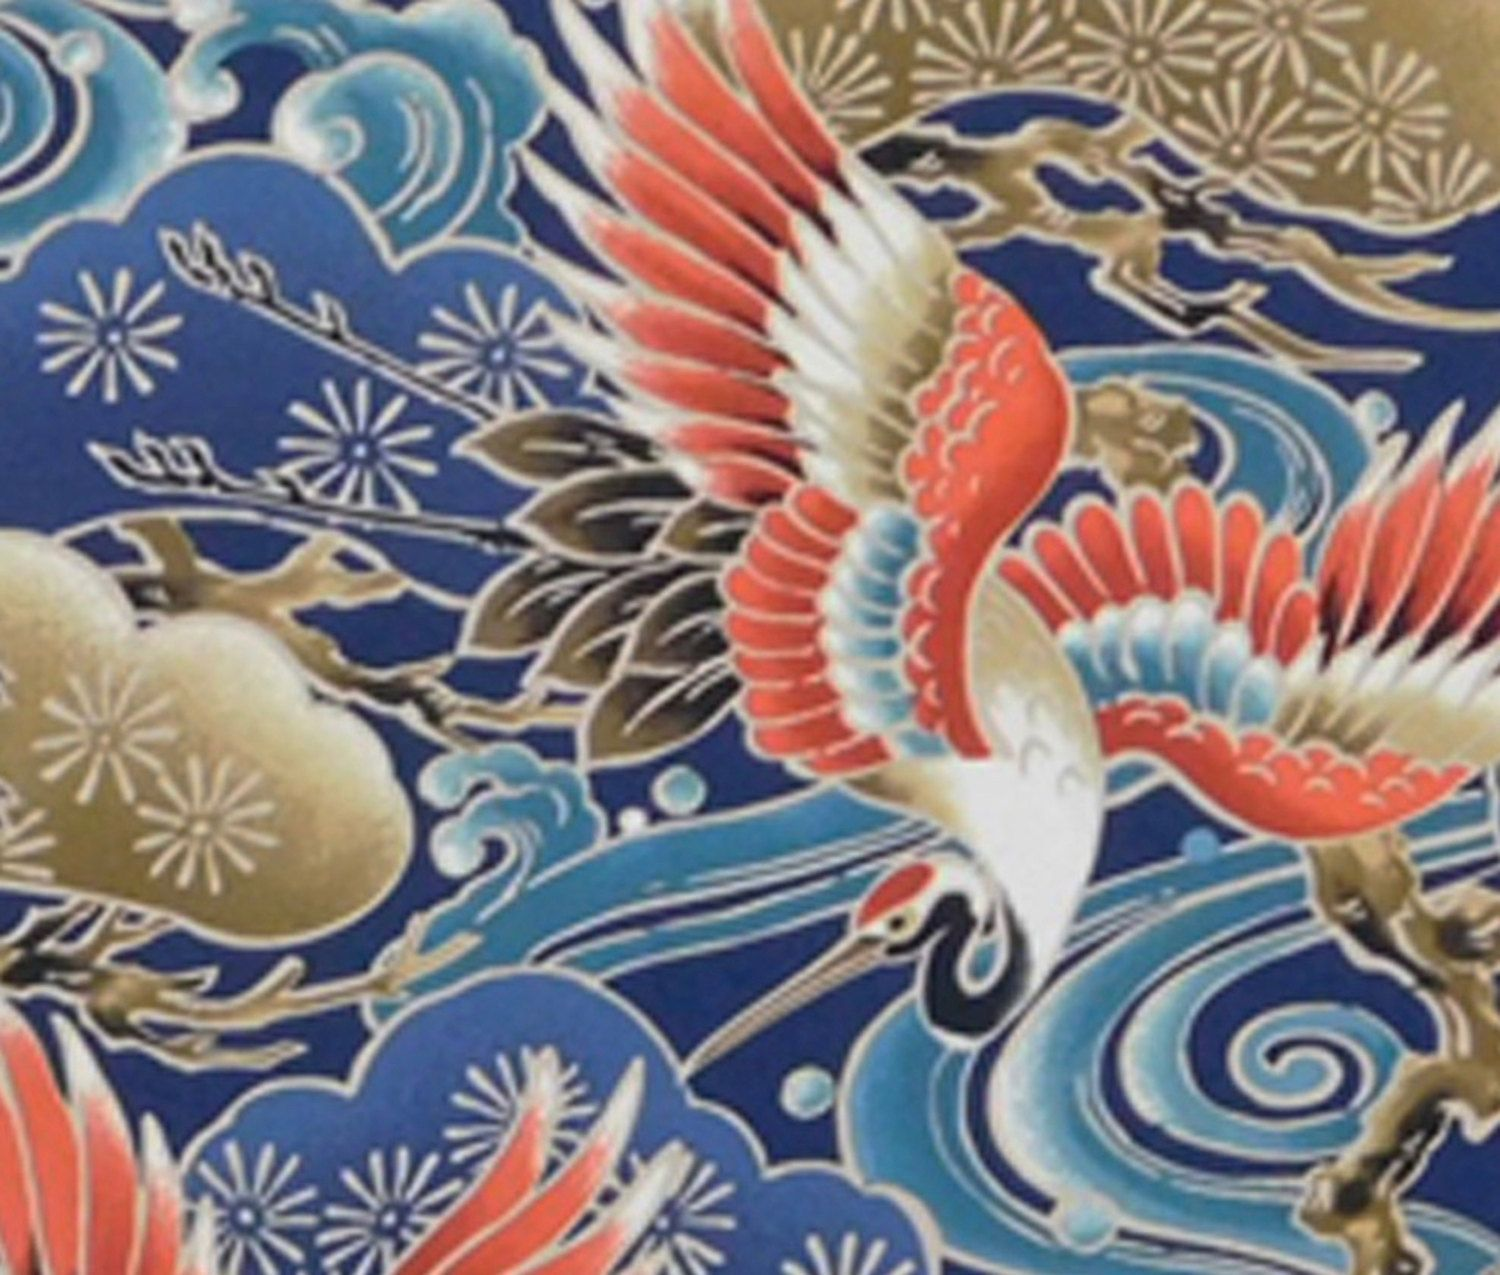 Japanese Fabric Swirling Waters Waves Colorful Cranes Pine Trees